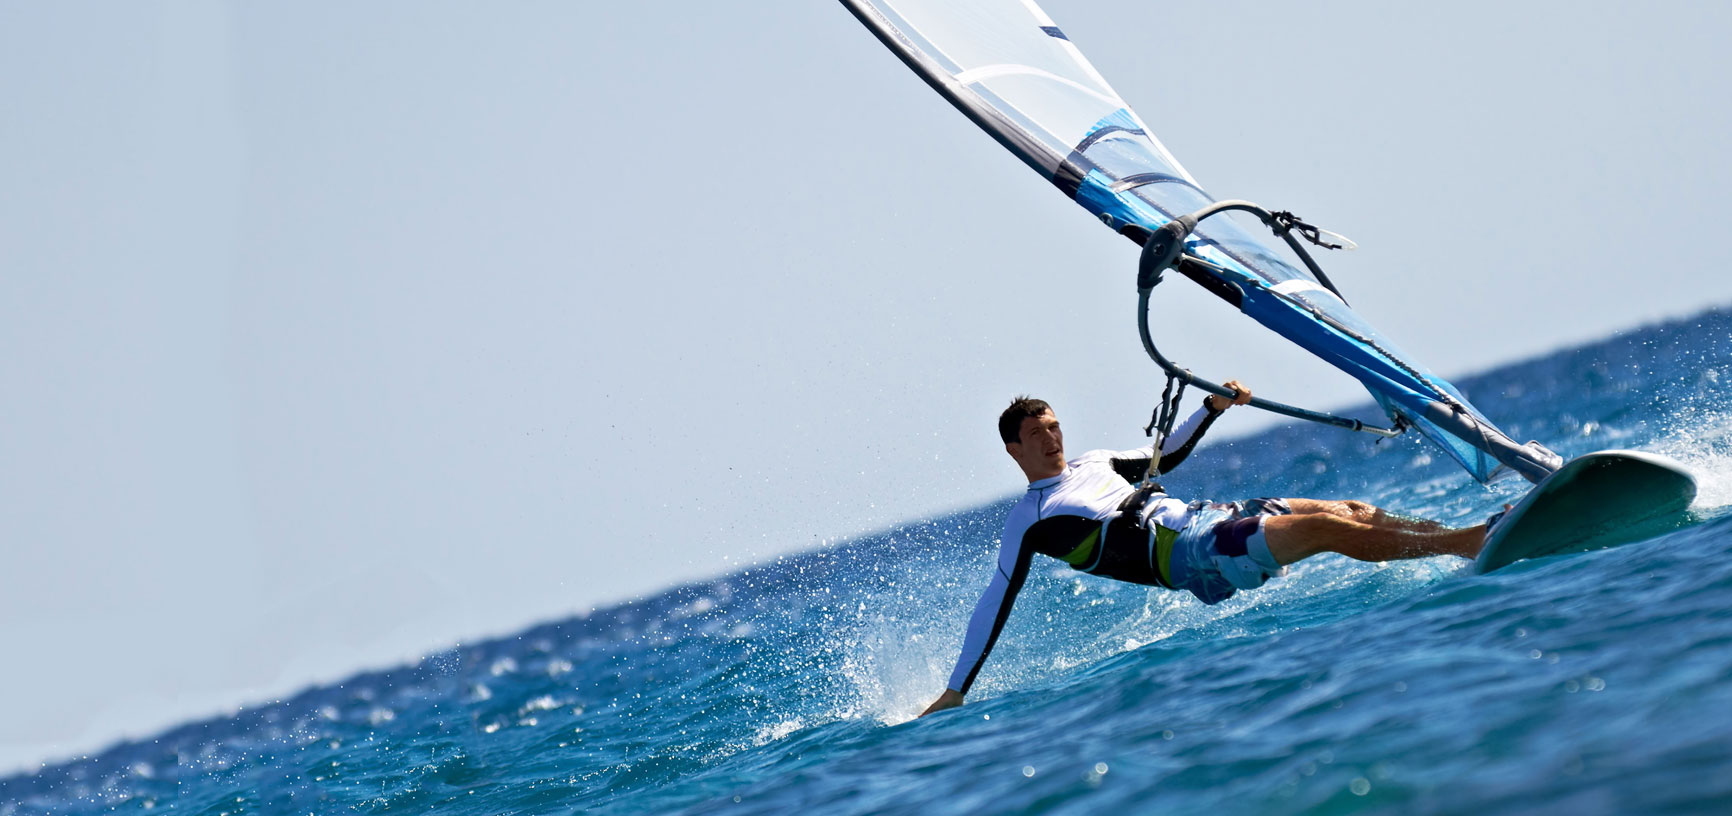 Image Program Surfing + Windsurfing Camp in Lanzarote